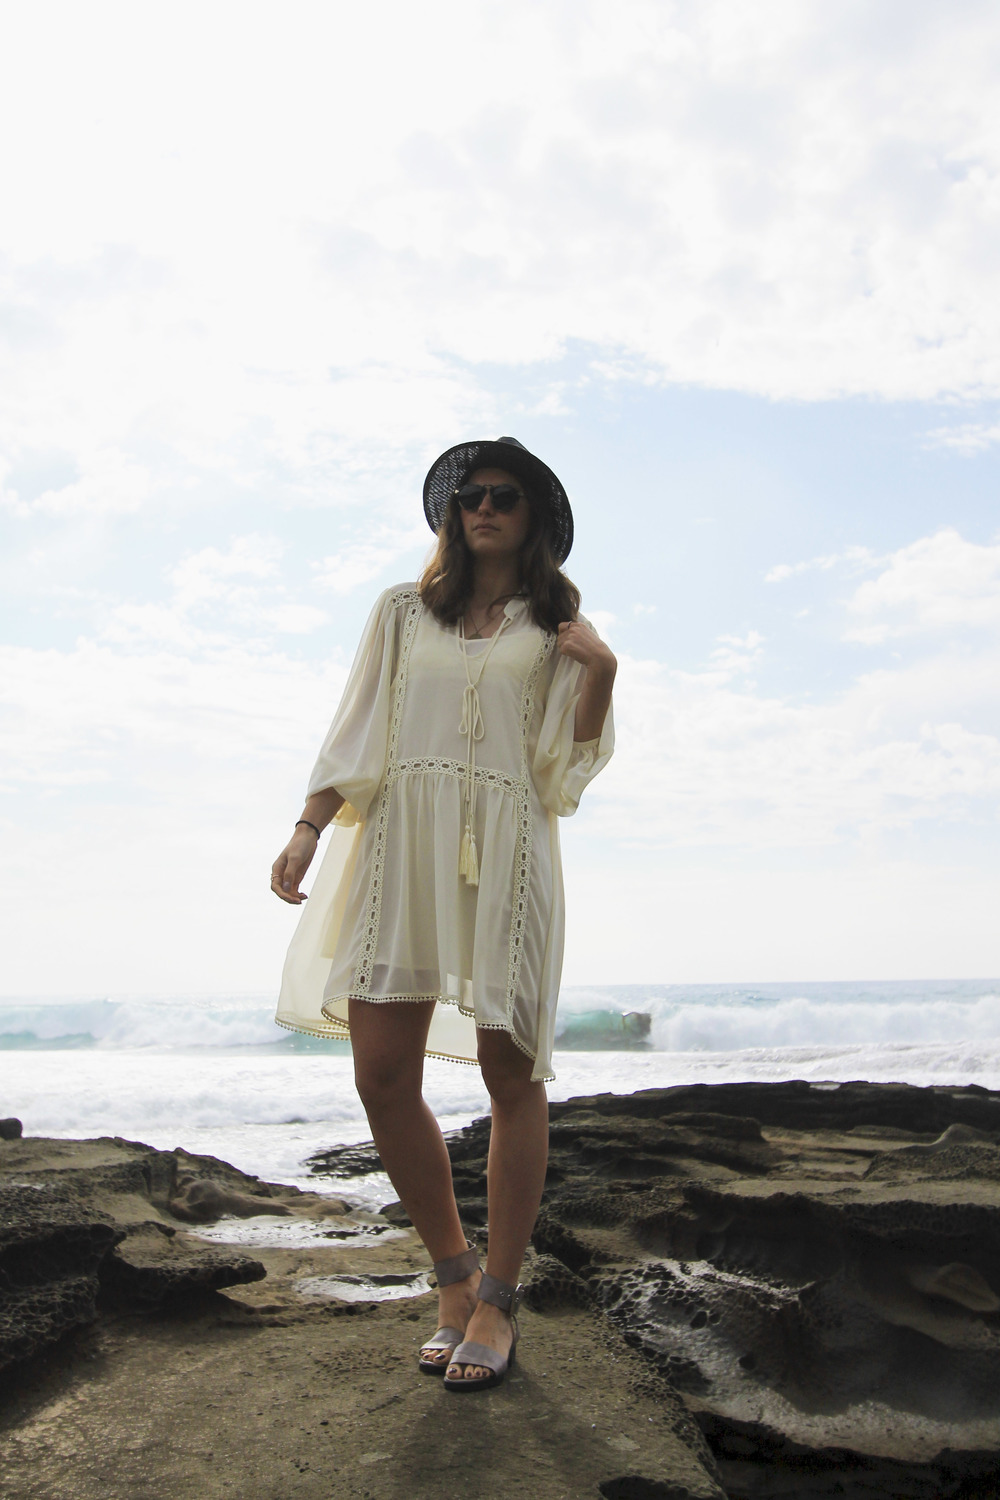 forever-21-black-straw-hat-grey-strap-buckle-sandals-style-blogger-beach.jpg